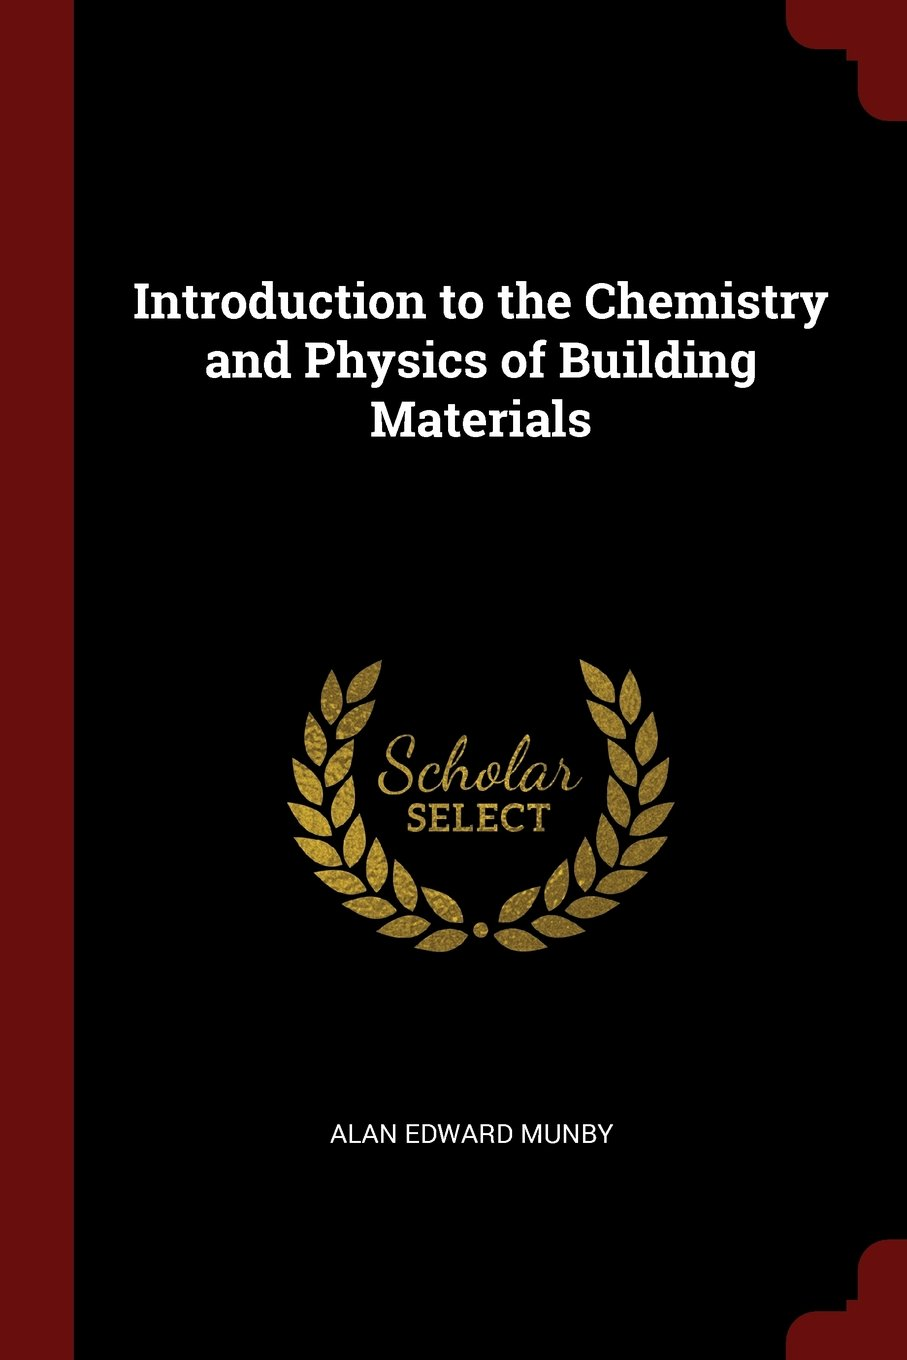 Introduction to the Chemistry and Physics of Building Materials pdf